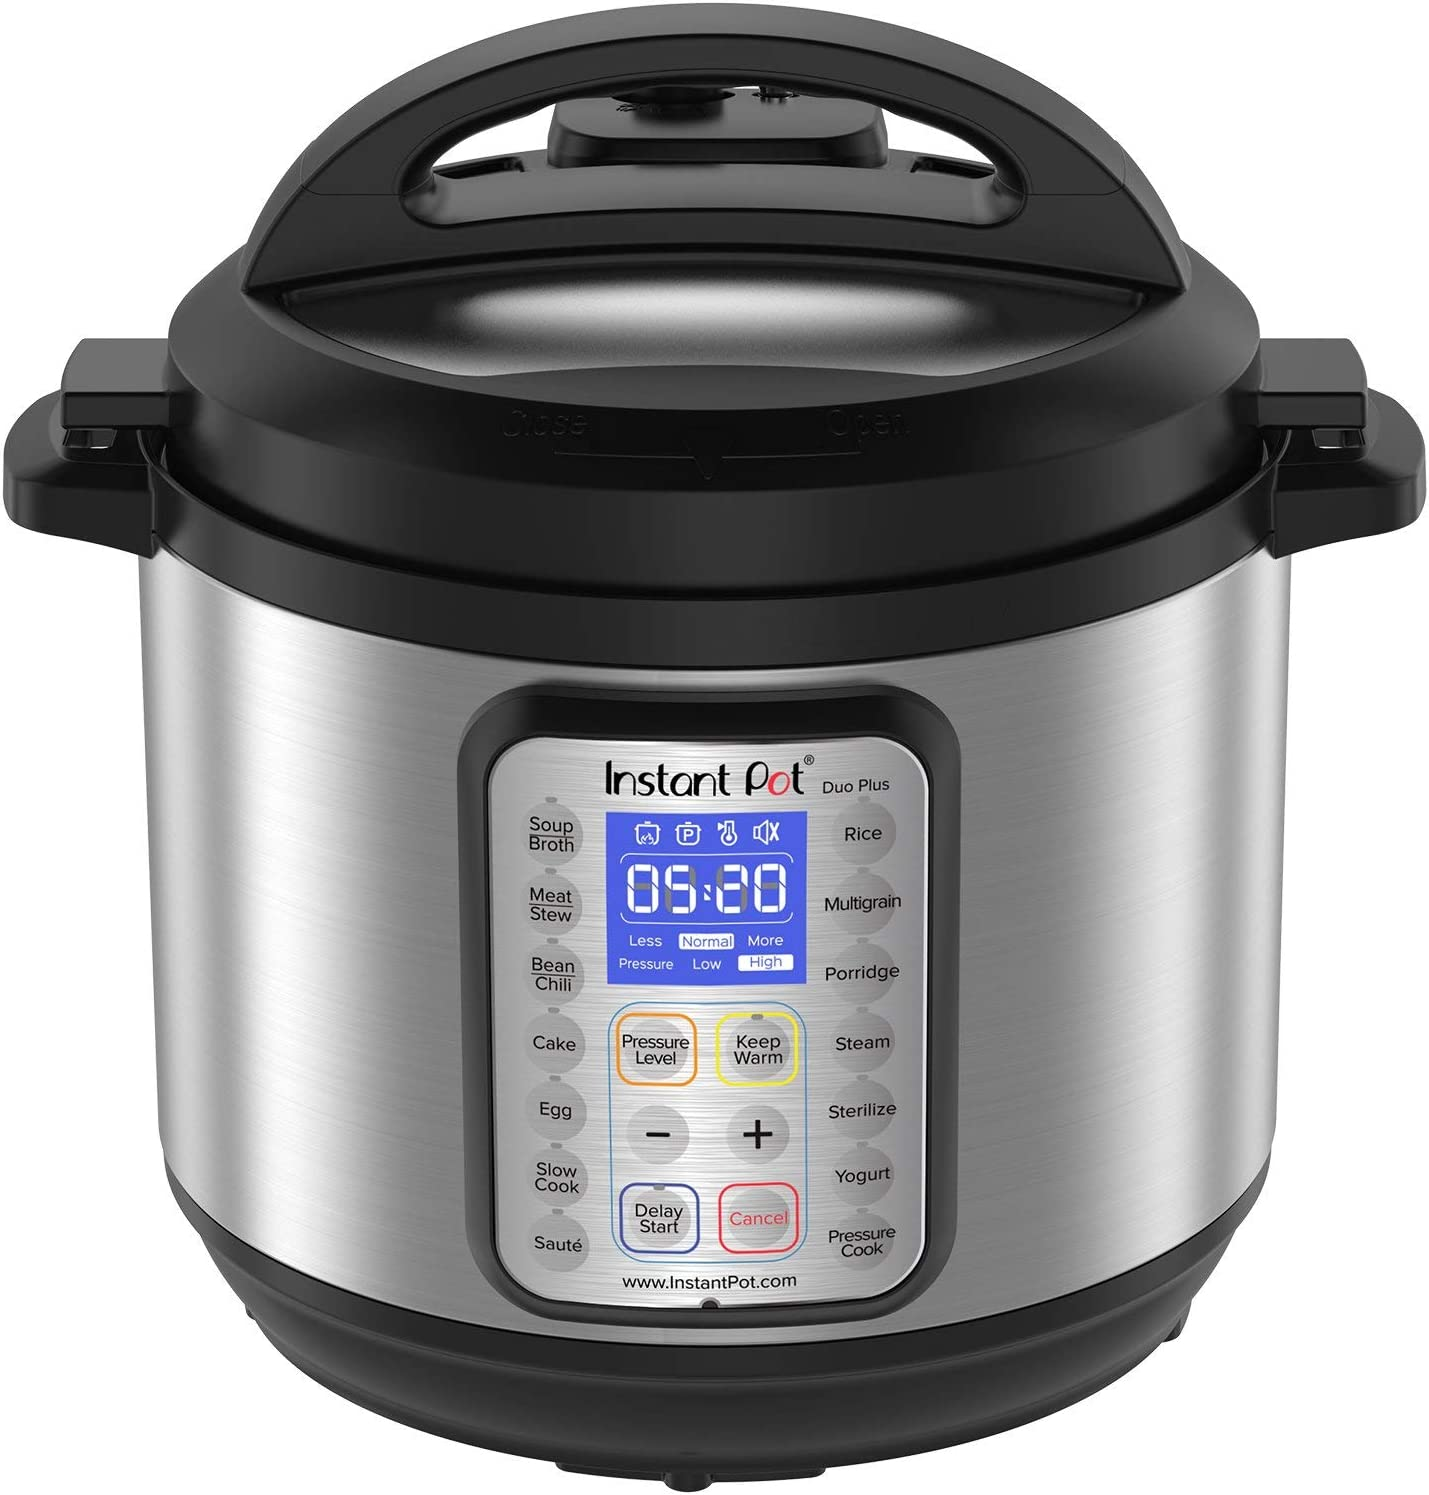 Instant Pot DUO Plus 8 Qt 9-in-1 Multi- Use Programmable Pressure Cooker, Slow Cooker, Rice Cooker, Yogurt Maker, Egg Cooker, Saut, Steamer, Warmer, and Sterilizer (Renewed)